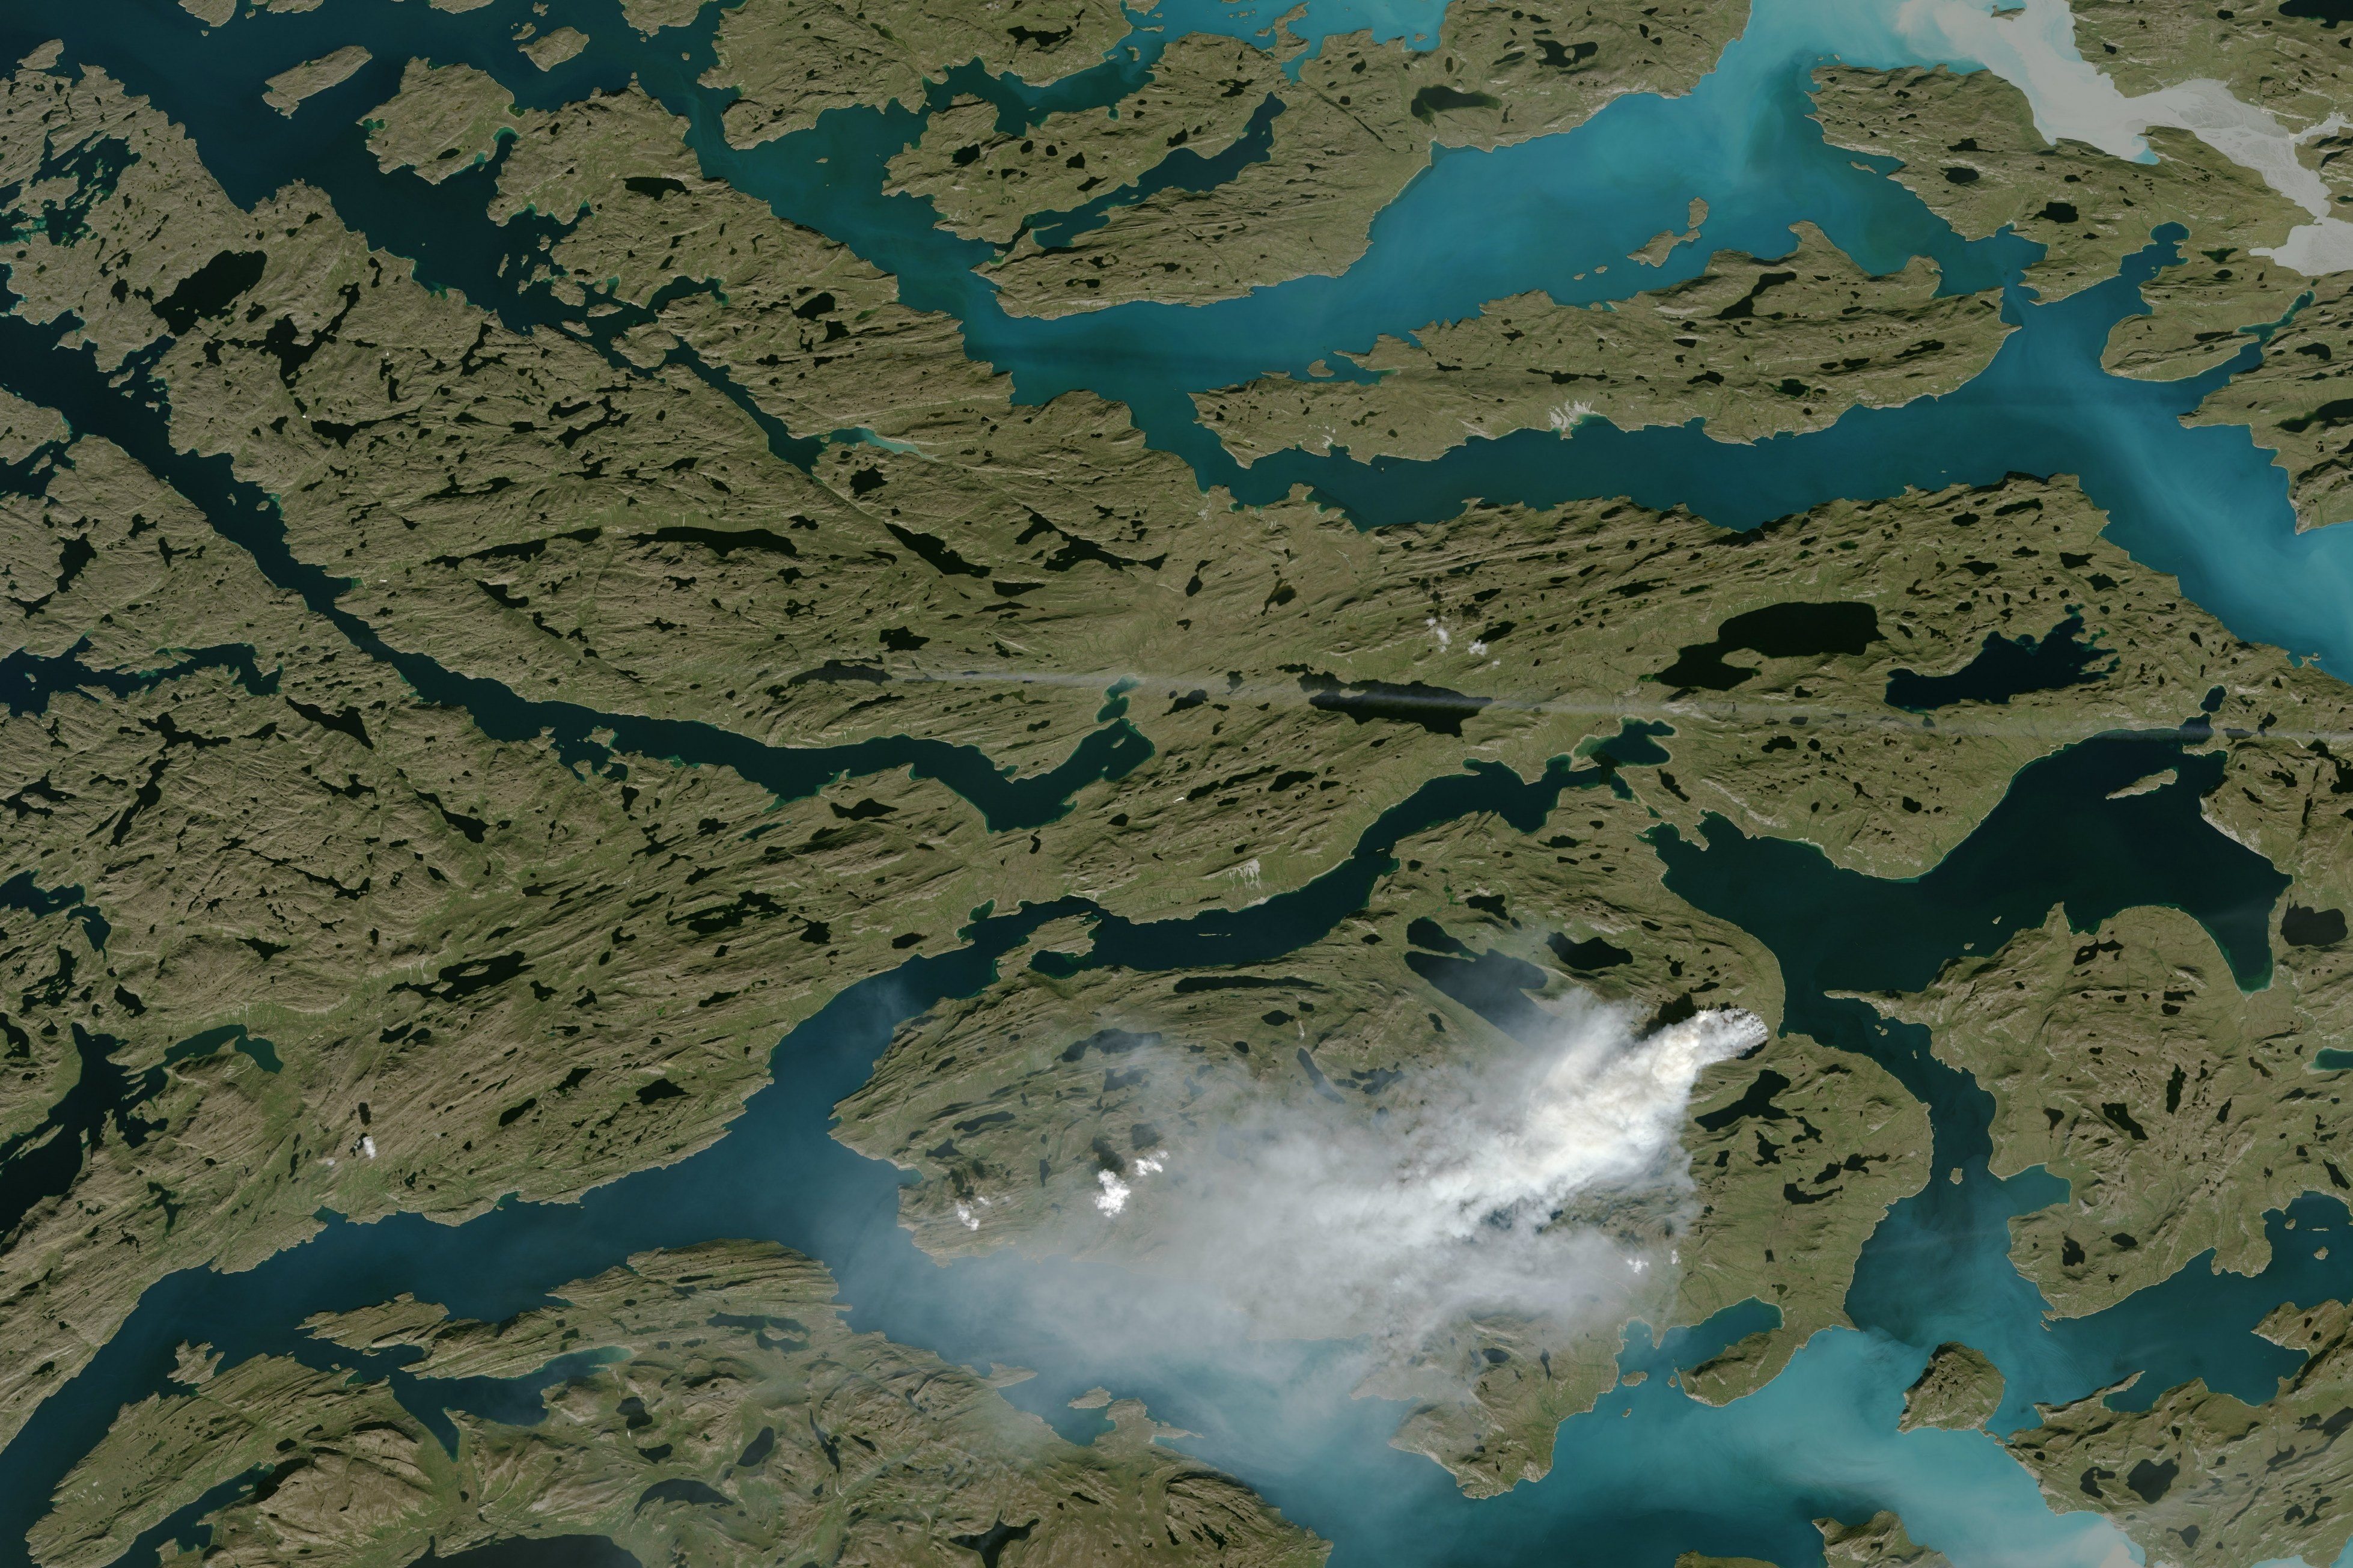 A wildfire burns in western Greenland, about 150 kilometers (90 miles) northeast of Sisimiut. (Jesse Allen / NASA Earth Observatory / USGS Landsat)